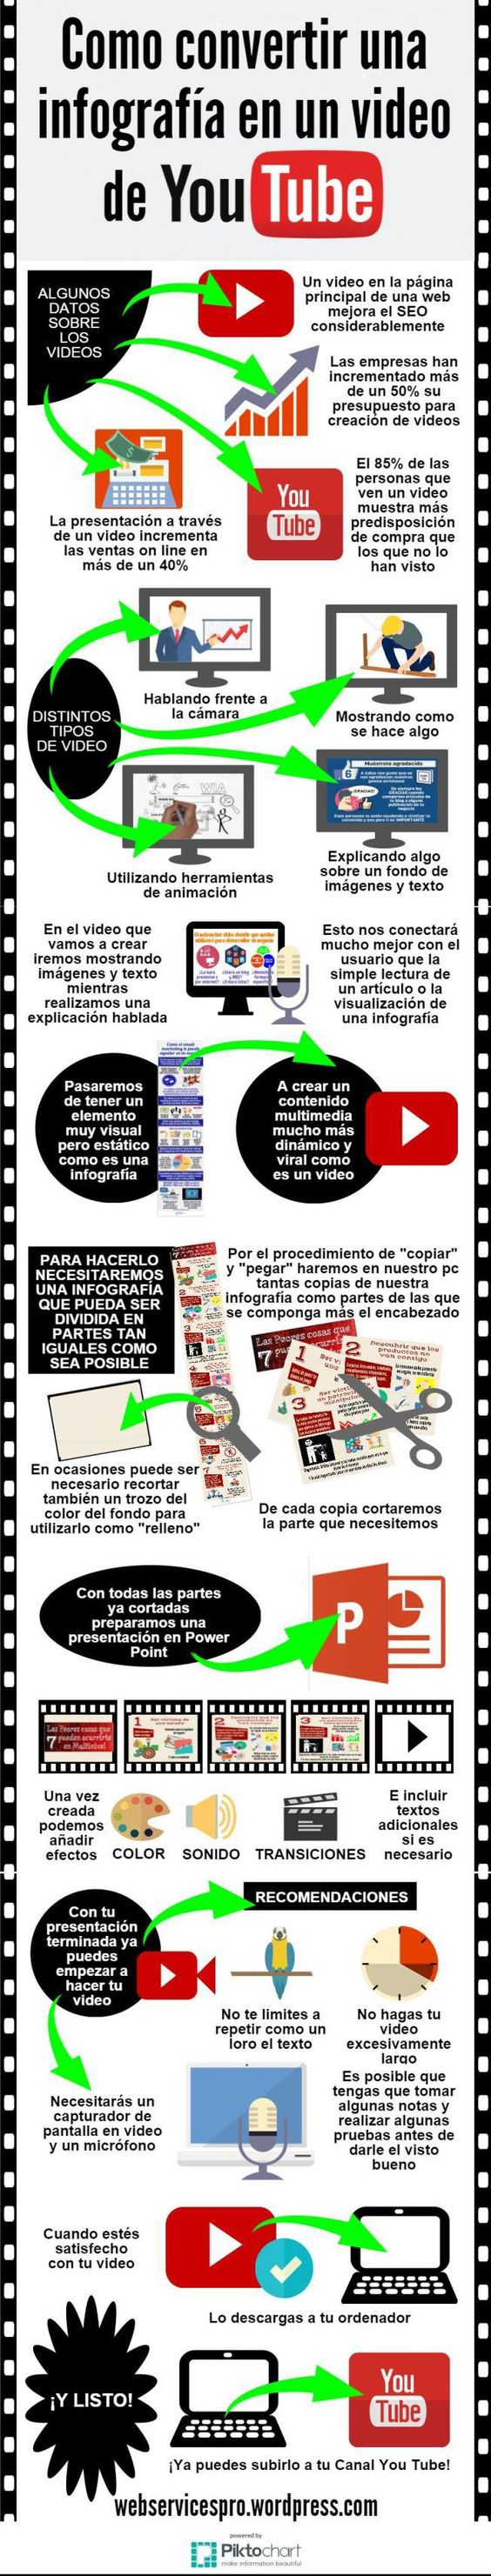 Cómo convertir una infografía en un vídeo de YouTube #infografia #infographic #marketing: